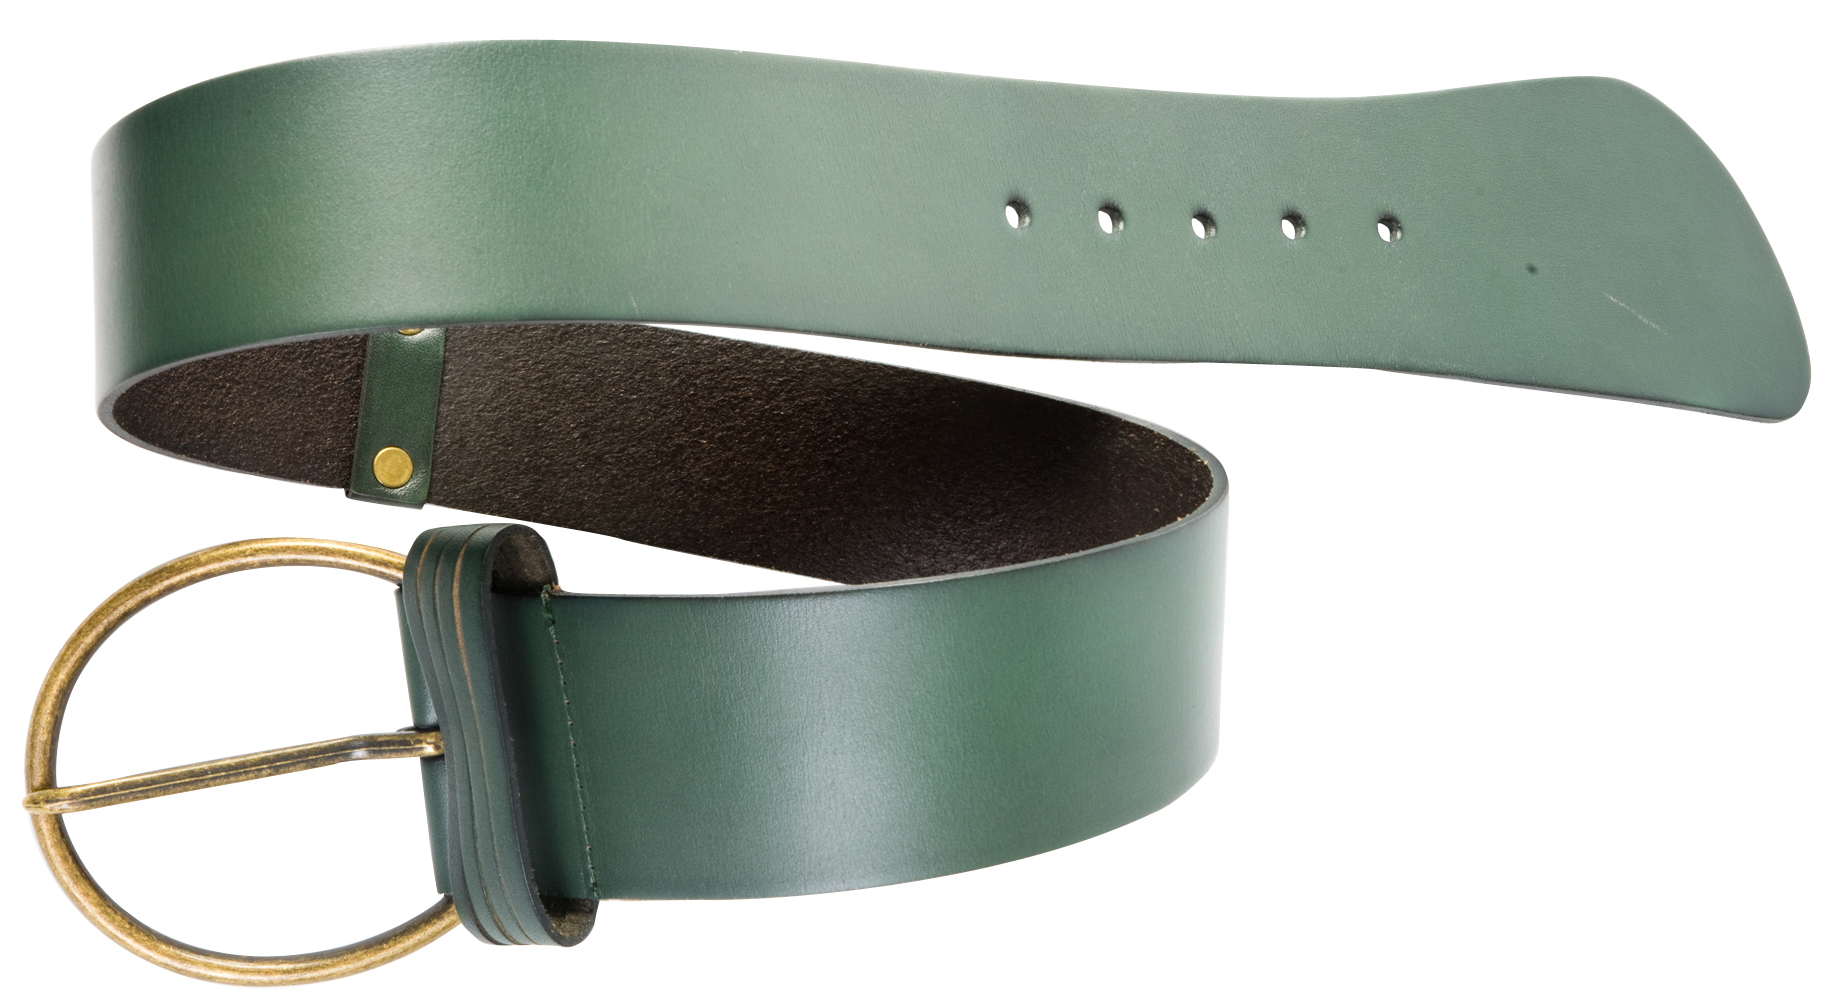 Wide waist belt in army green with a brass finish buckle, $56 at Teal